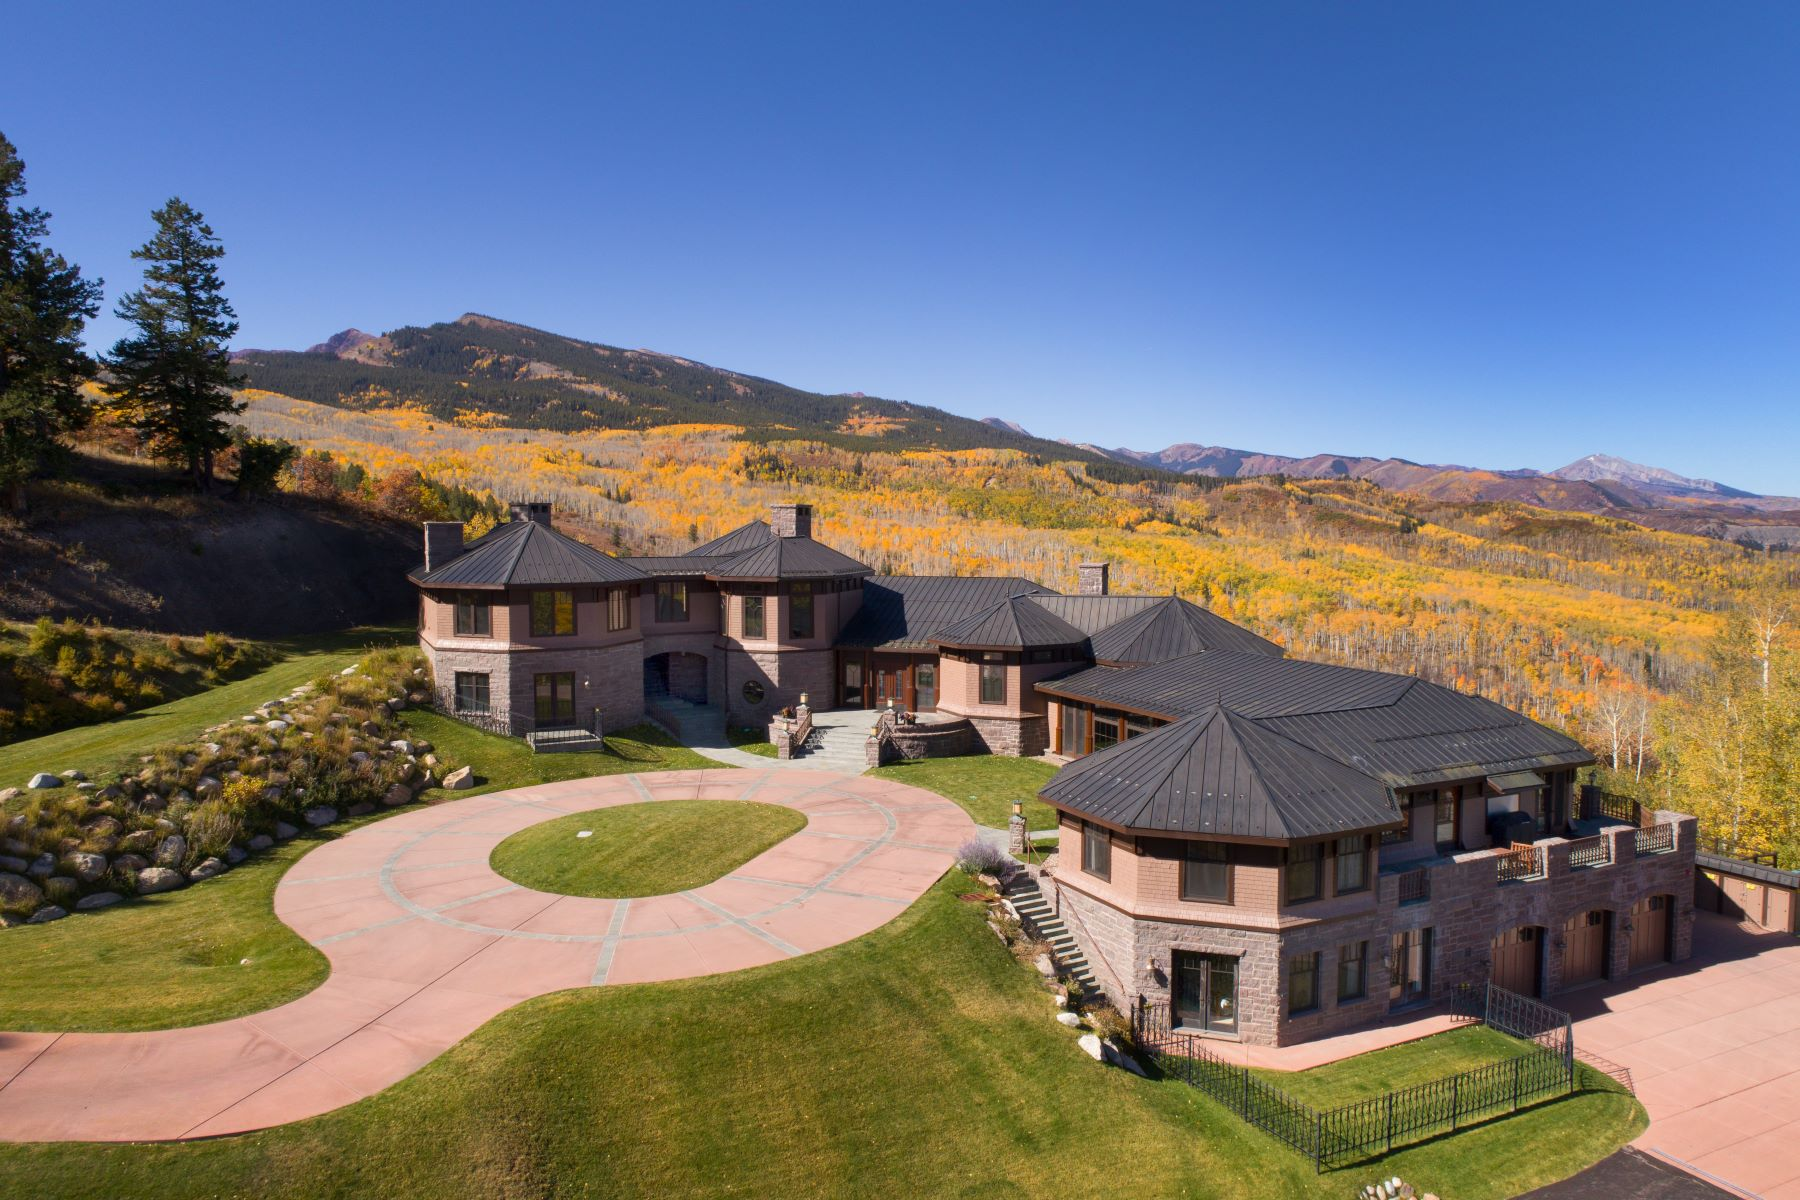 Single Family Homes for Sale at Owl Mountain Ranch 2900 West Buttermilk Road Aspen, Colorado 81611 United States